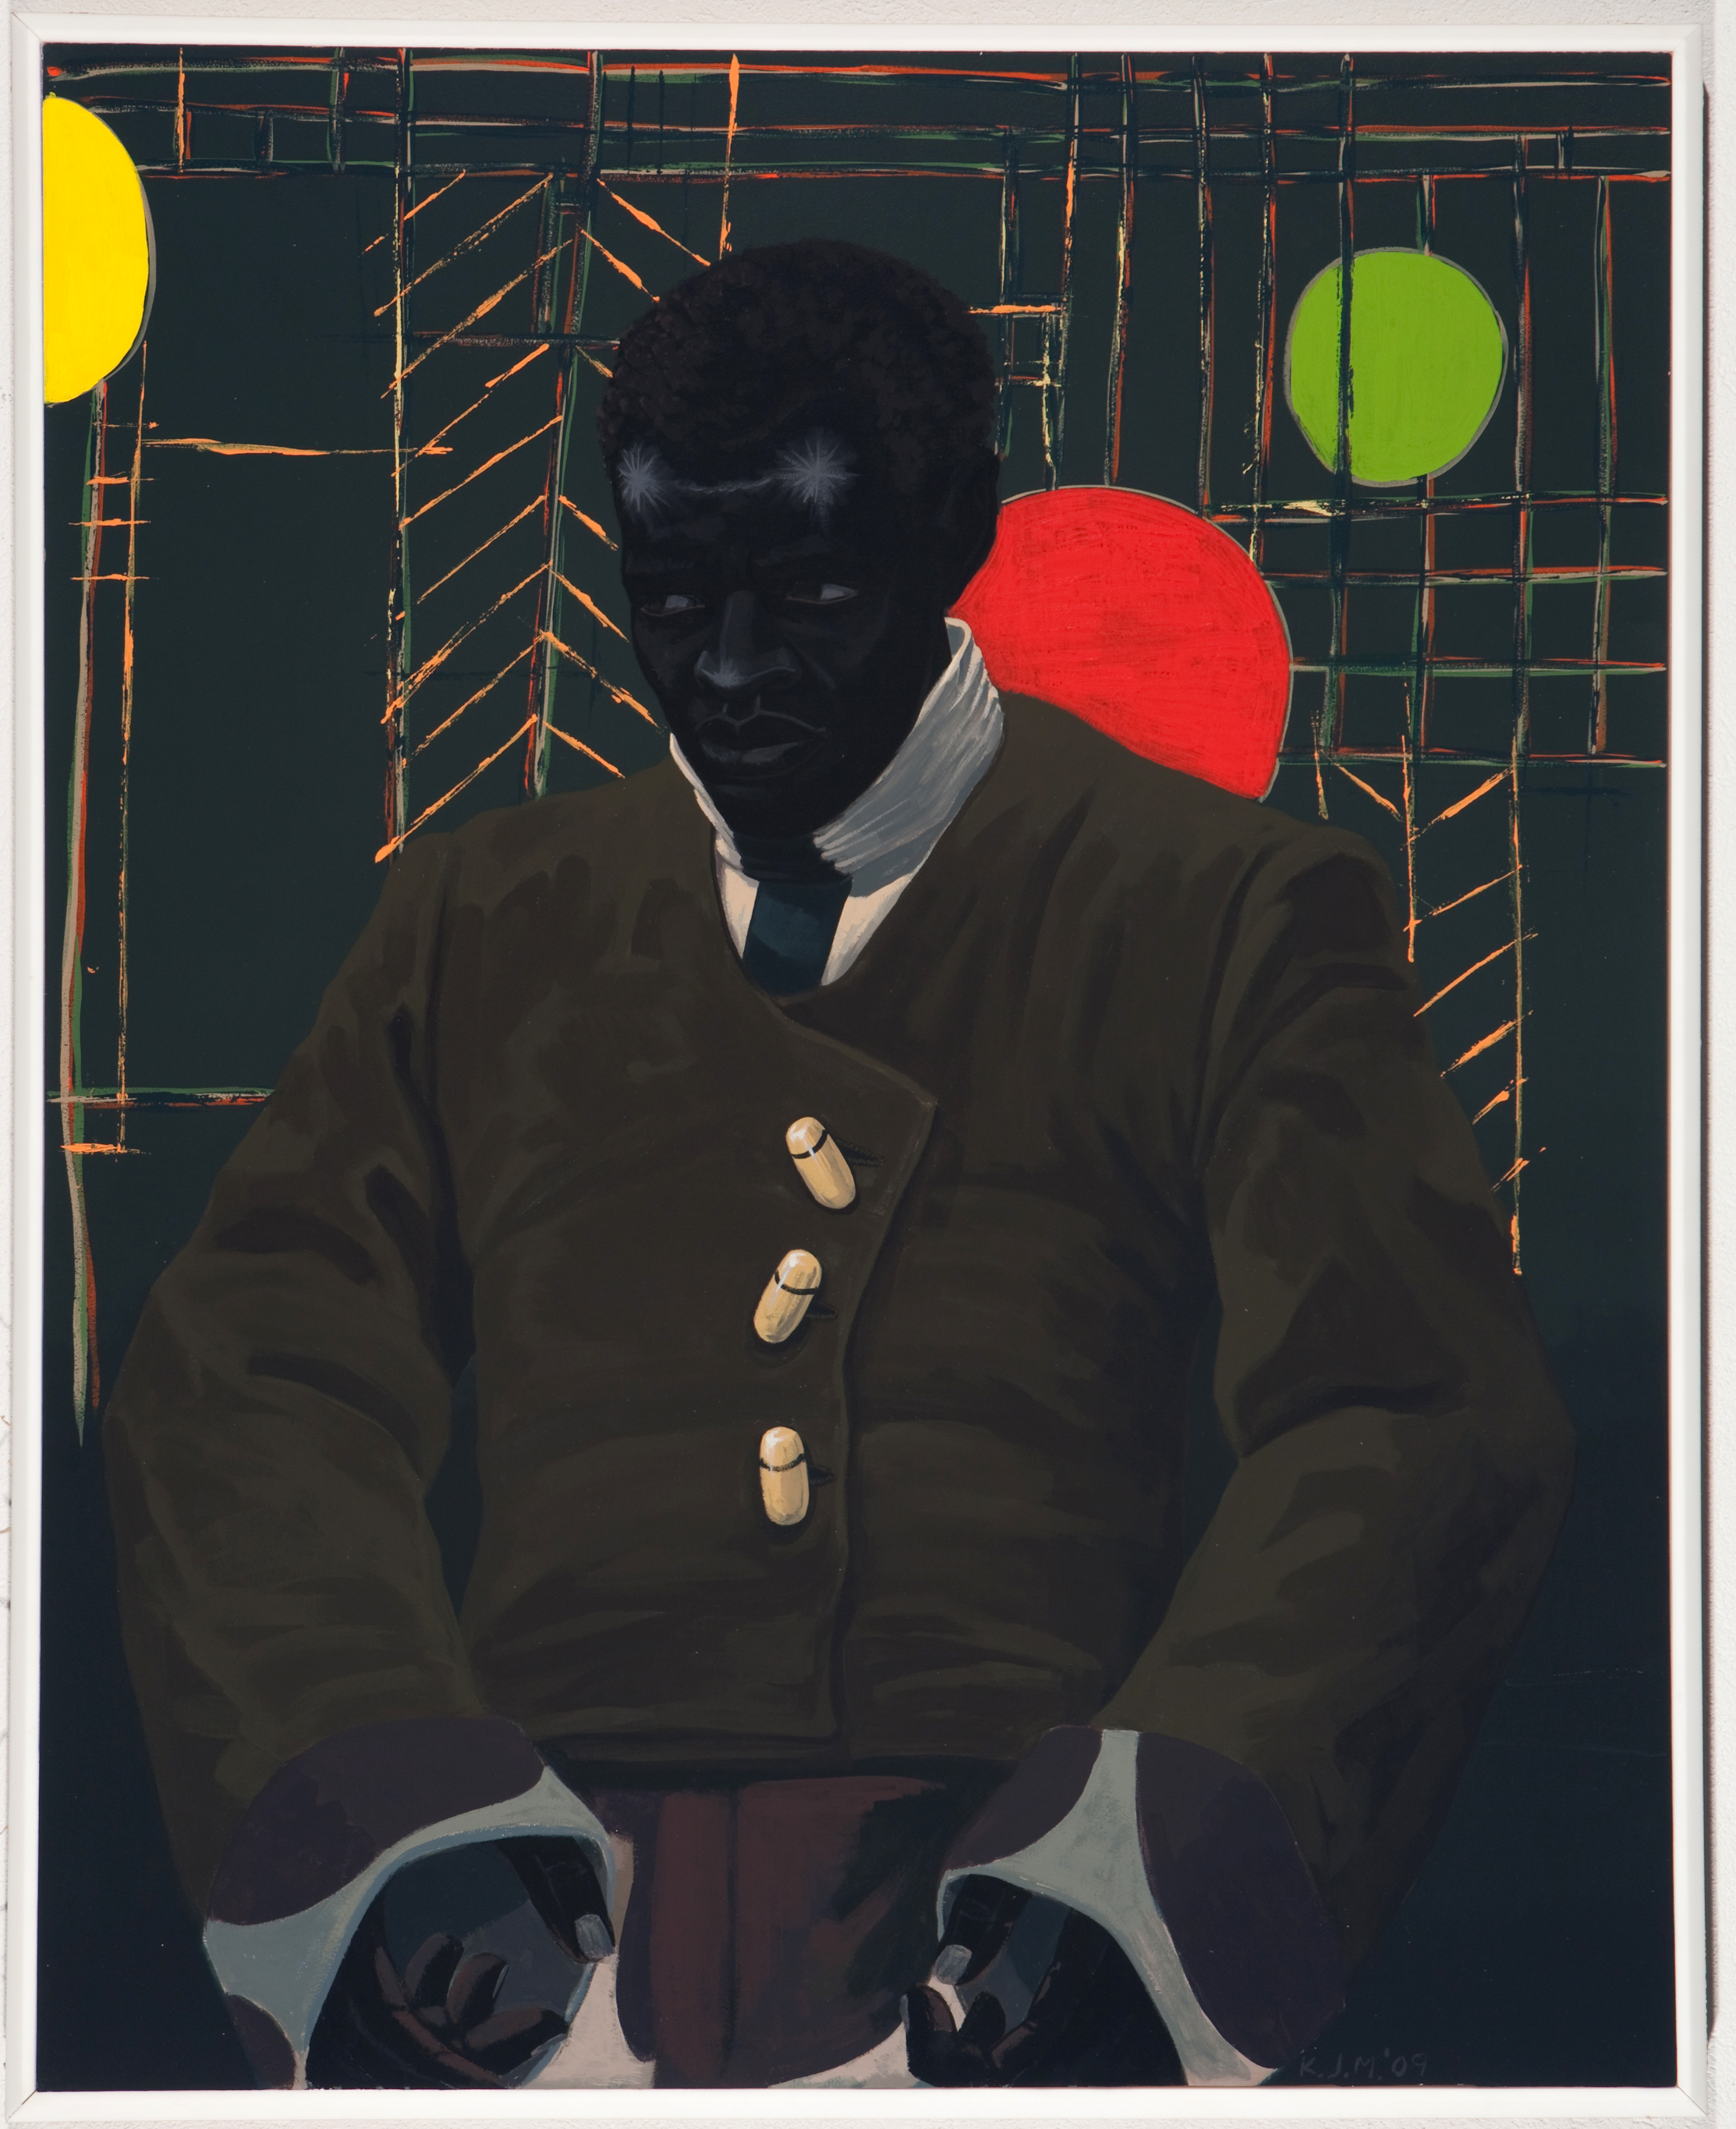 Kerry James Marshall, The Actor Hezekiah Washington as Julian Carlton Taliesen Murderer Frank Lloyd Wright Family, 2009 © Kerry James Marshall. Courtesy of the artist and Jack Shainman Gallery, New York